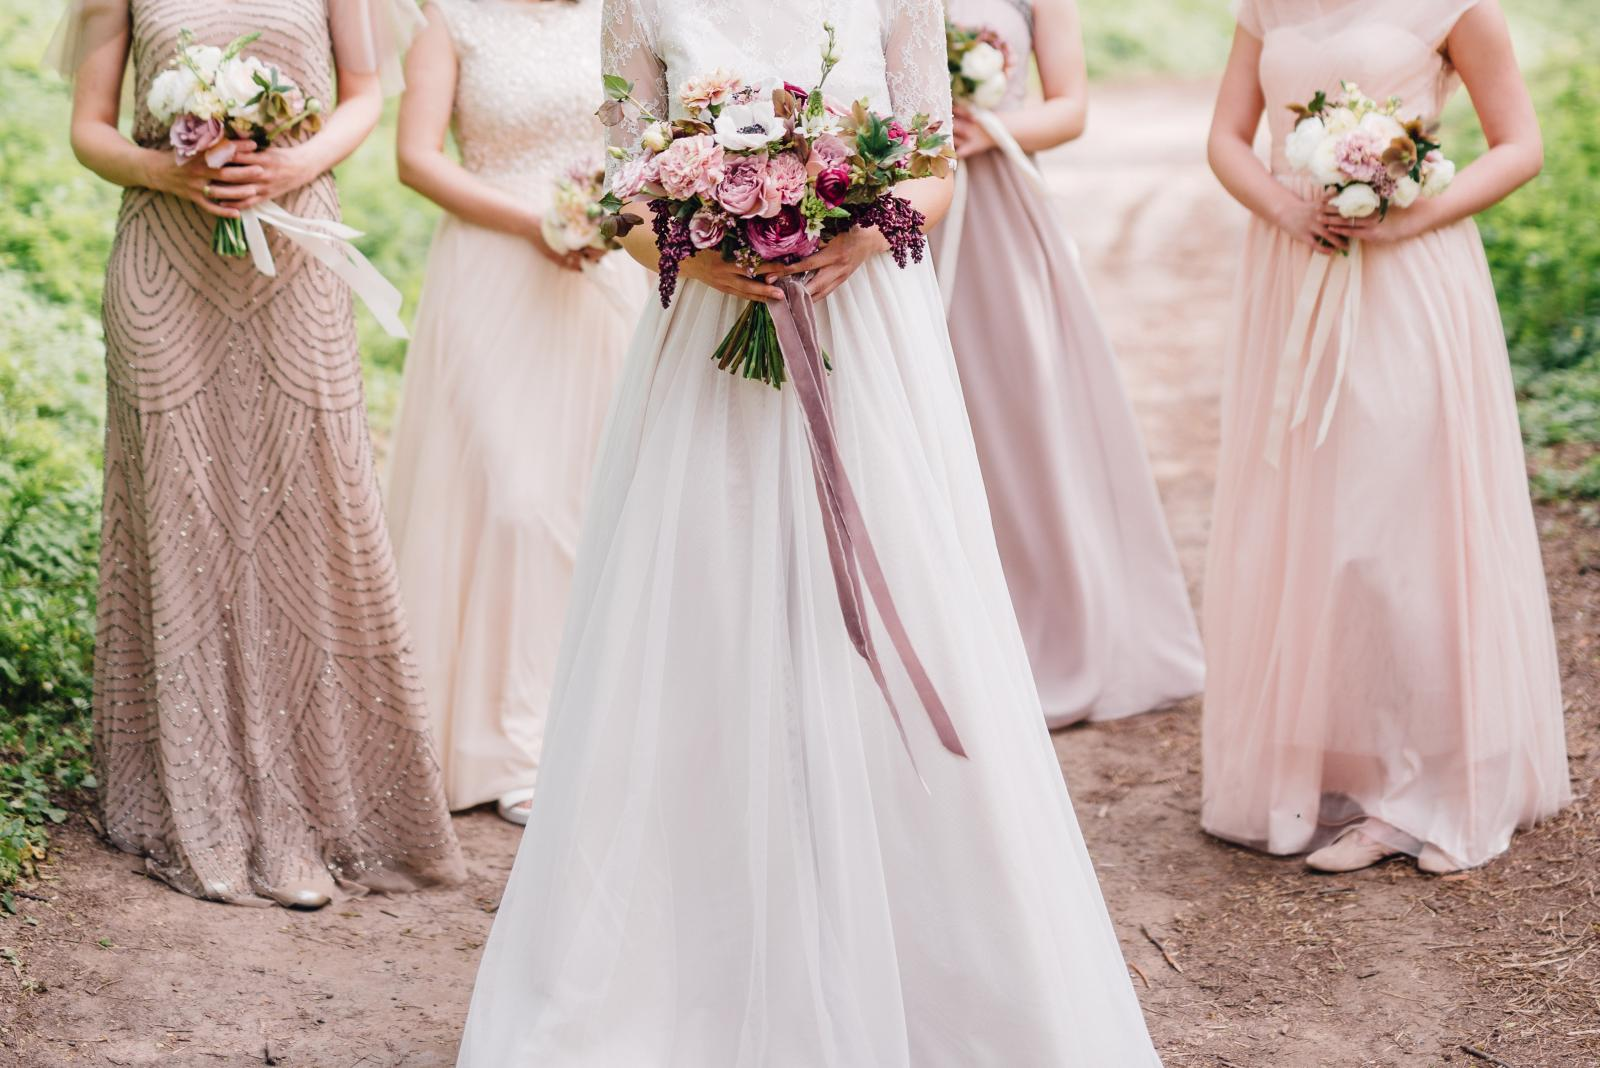 Say 'Yes' To The Sustainable Wedding Dress